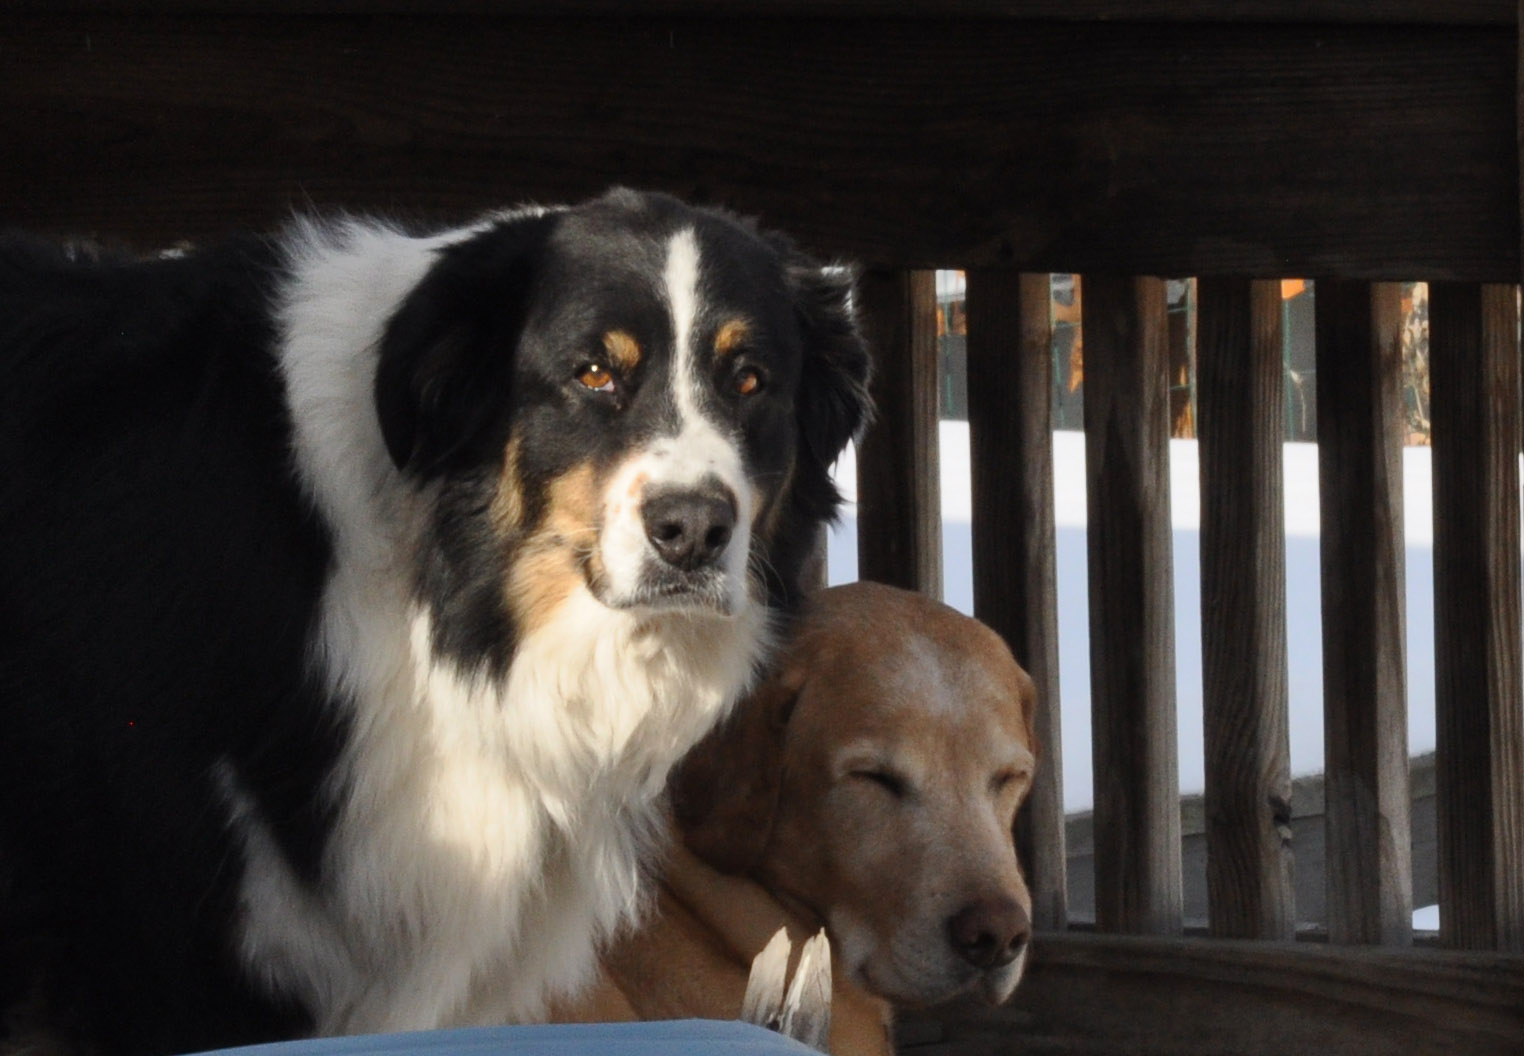 My Two Dogs, Bob and Norman, are the most important part of my studio!